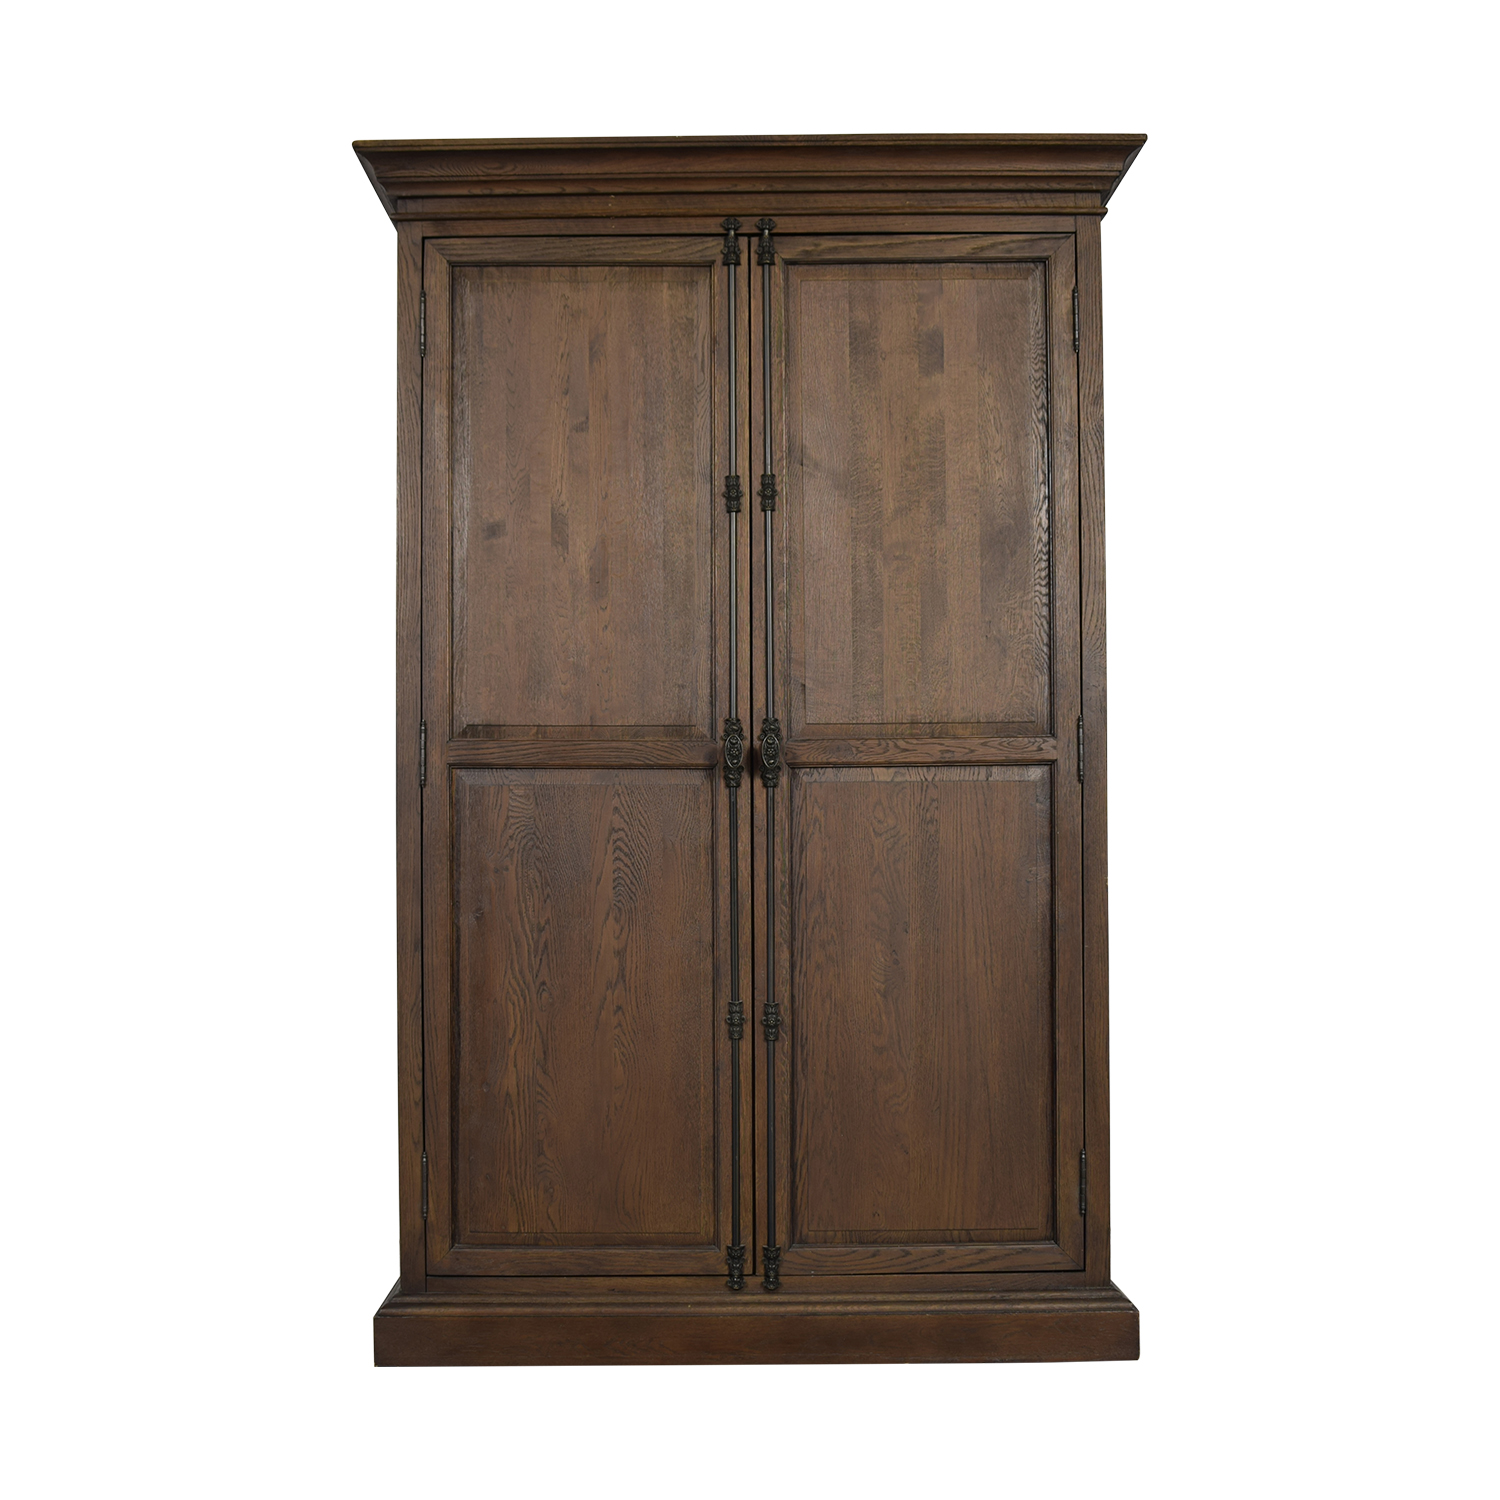 shop Restoration Hardware Restoration Hardware French Panel Double Door Cabinet online